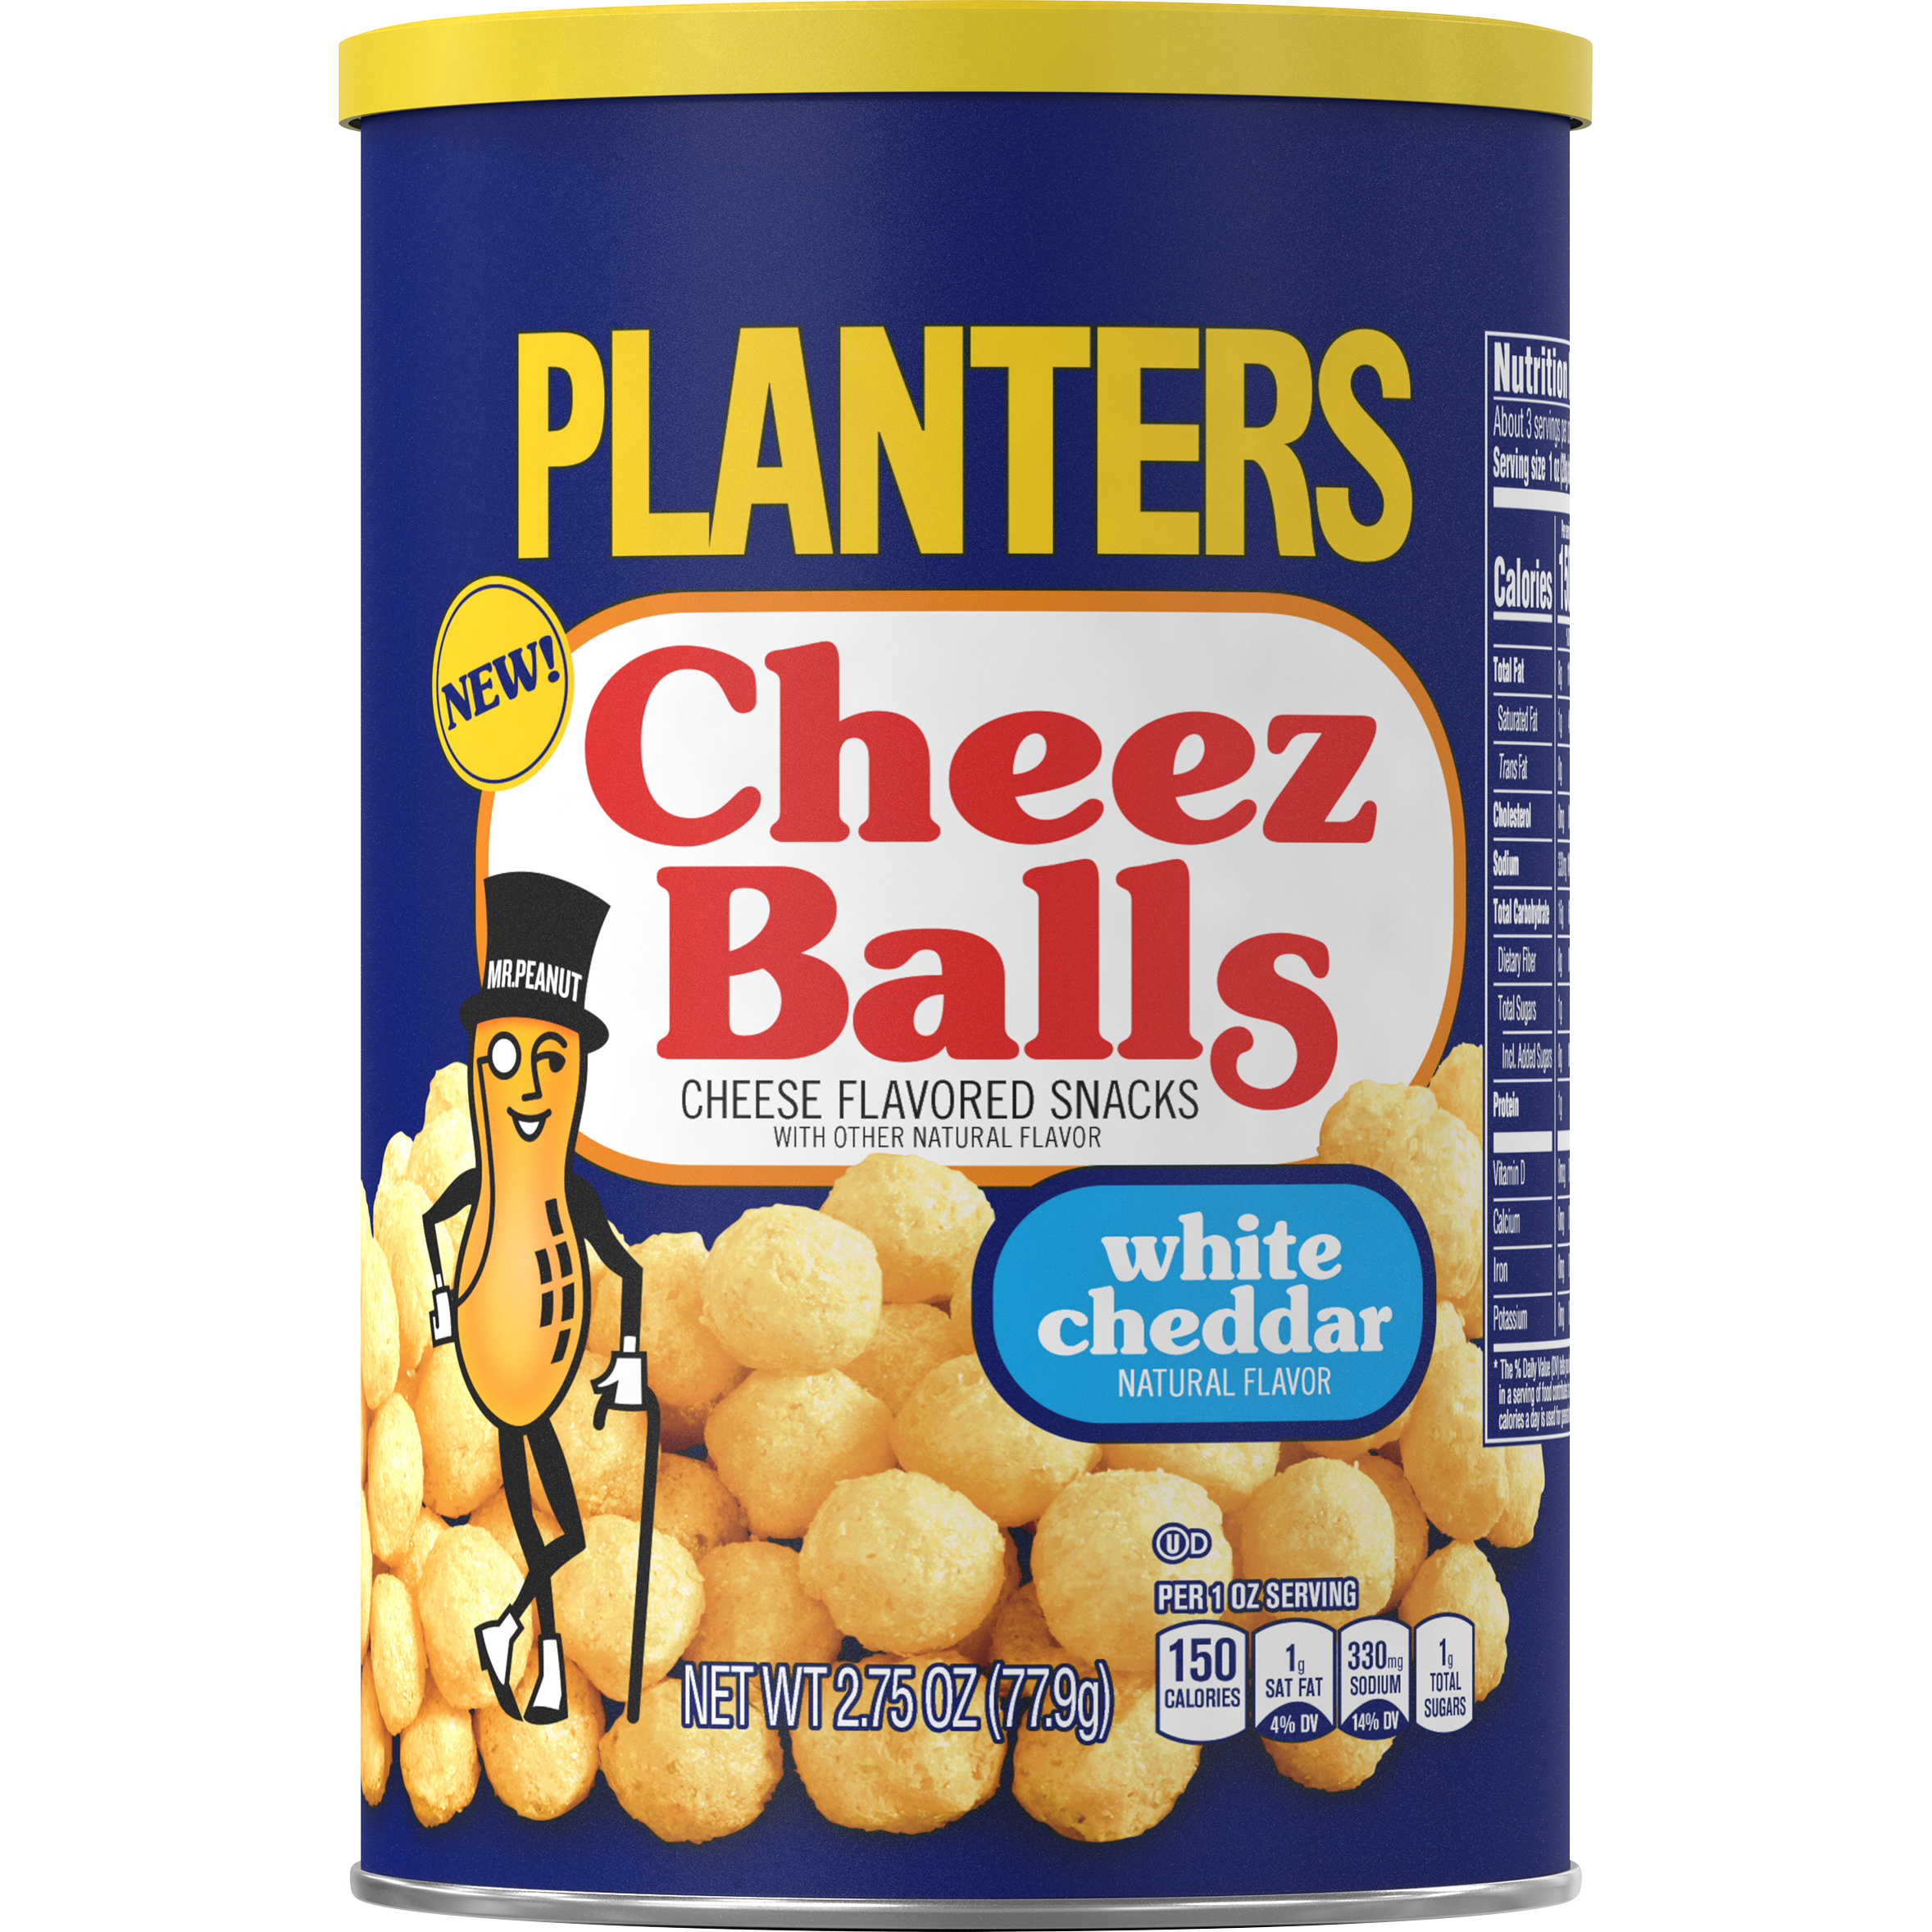 Planters White Cheddar Cheez Balls, 2.75oz Canister image